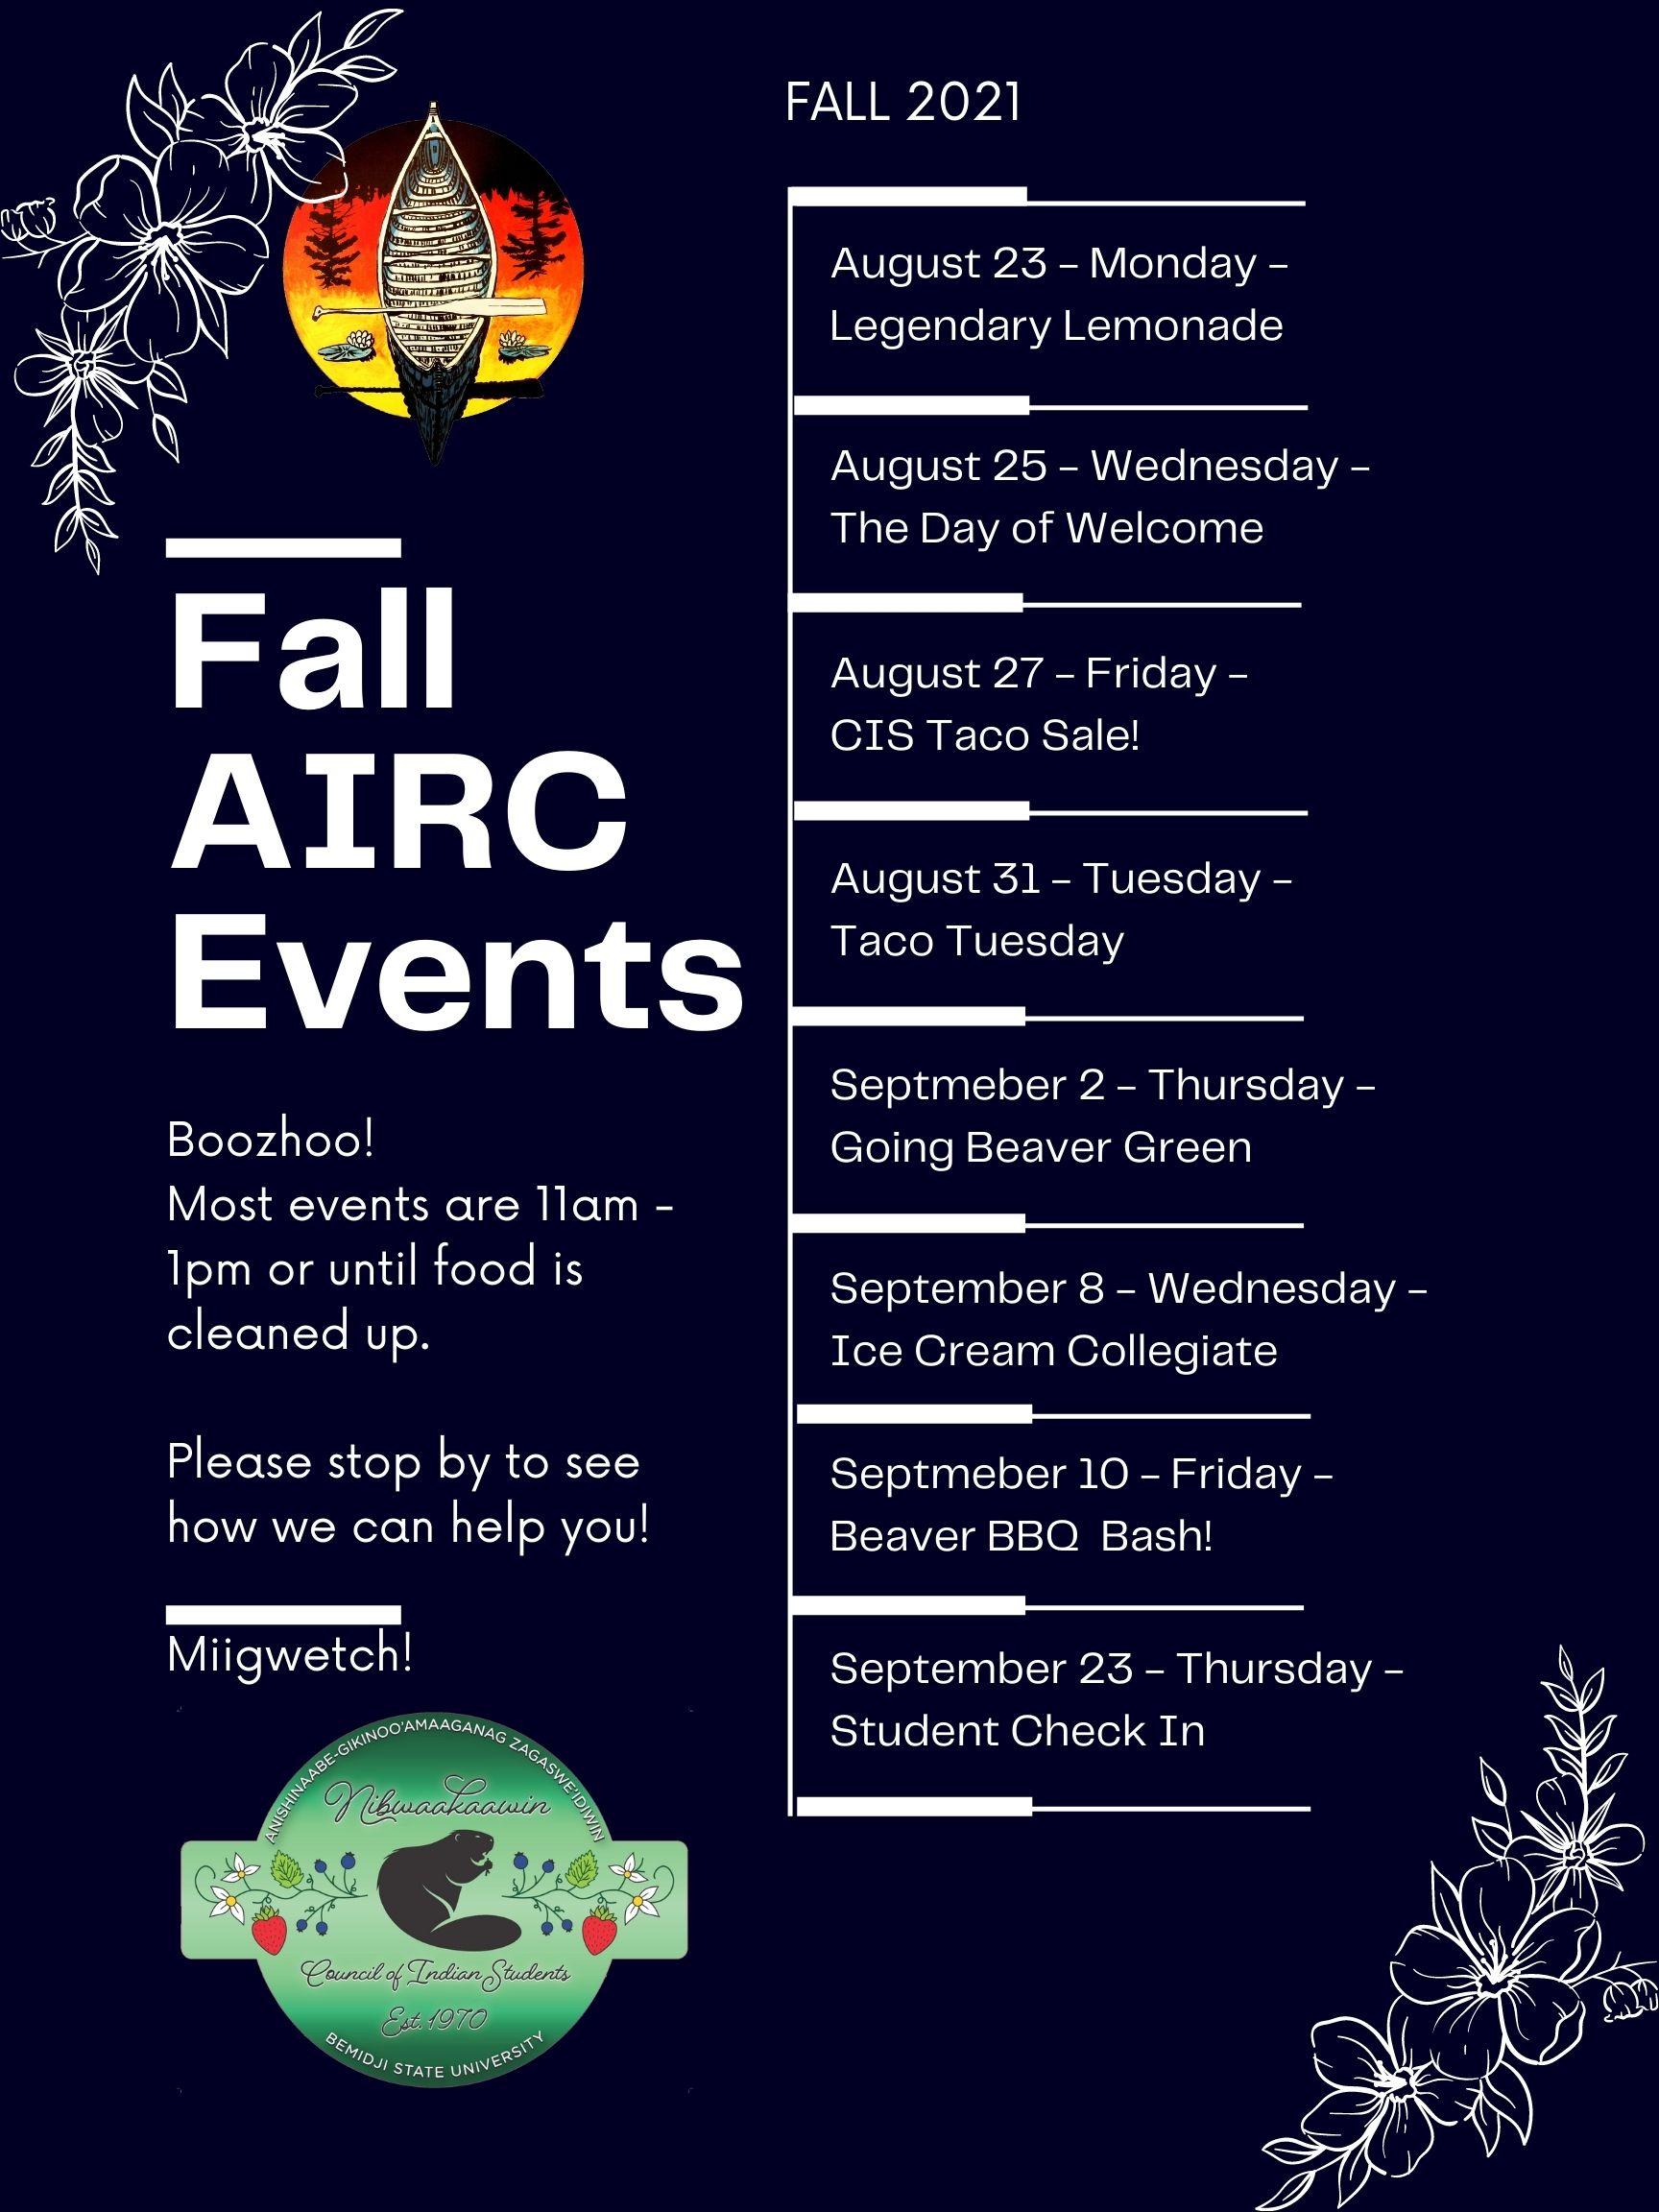 A list of Fall Welcome Events at AIRC